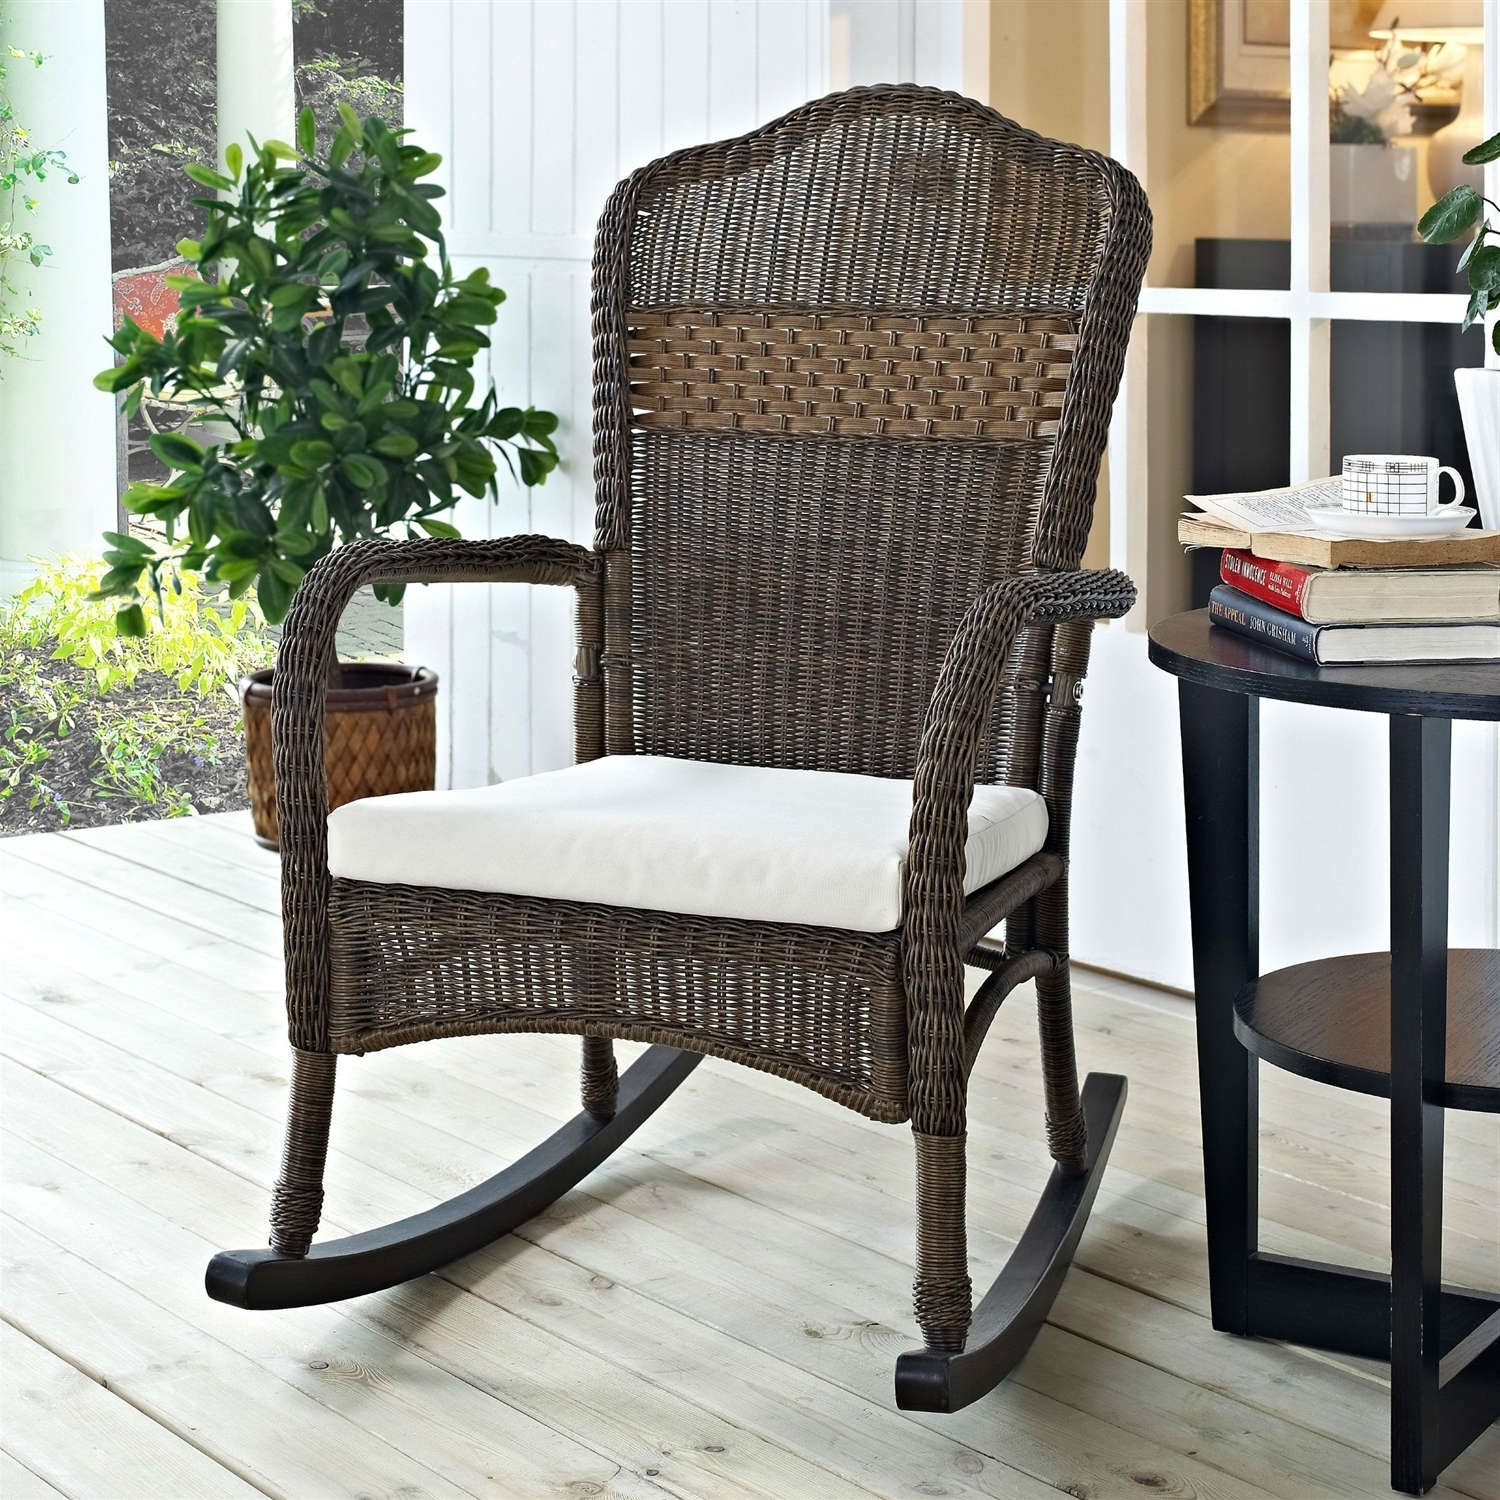 Indoor/outdoor Patio Porch Mocha Wicker Rocking Chair With Beige Within Favorite Indoor Wicker Rocking Chairs (View 7 of 15)